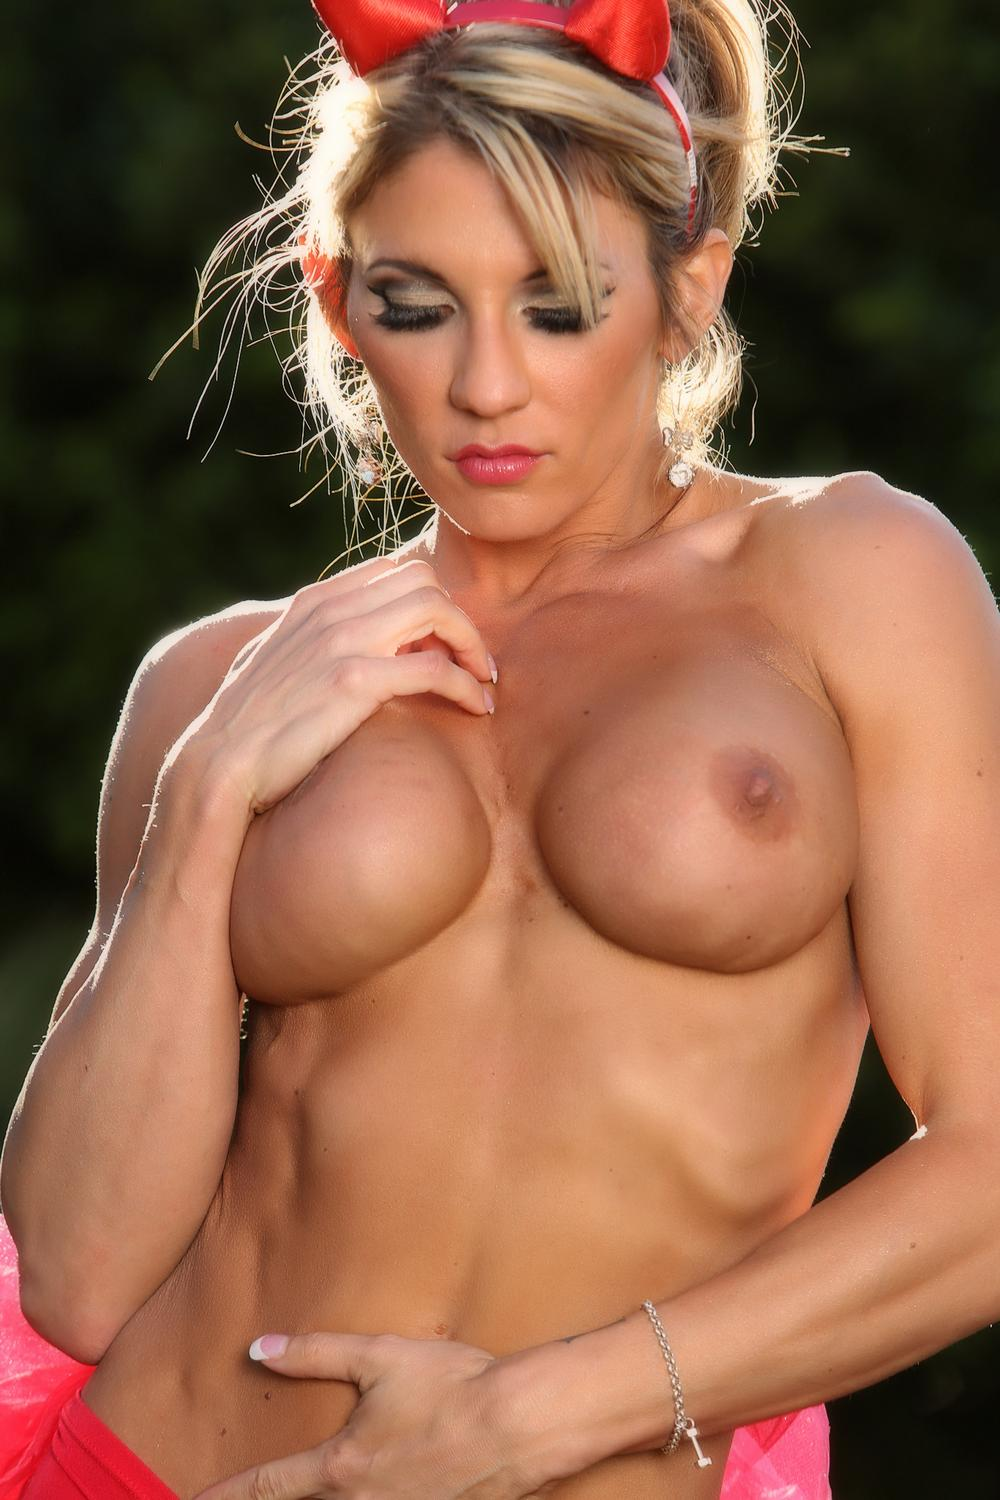 Abby marie muscle nude